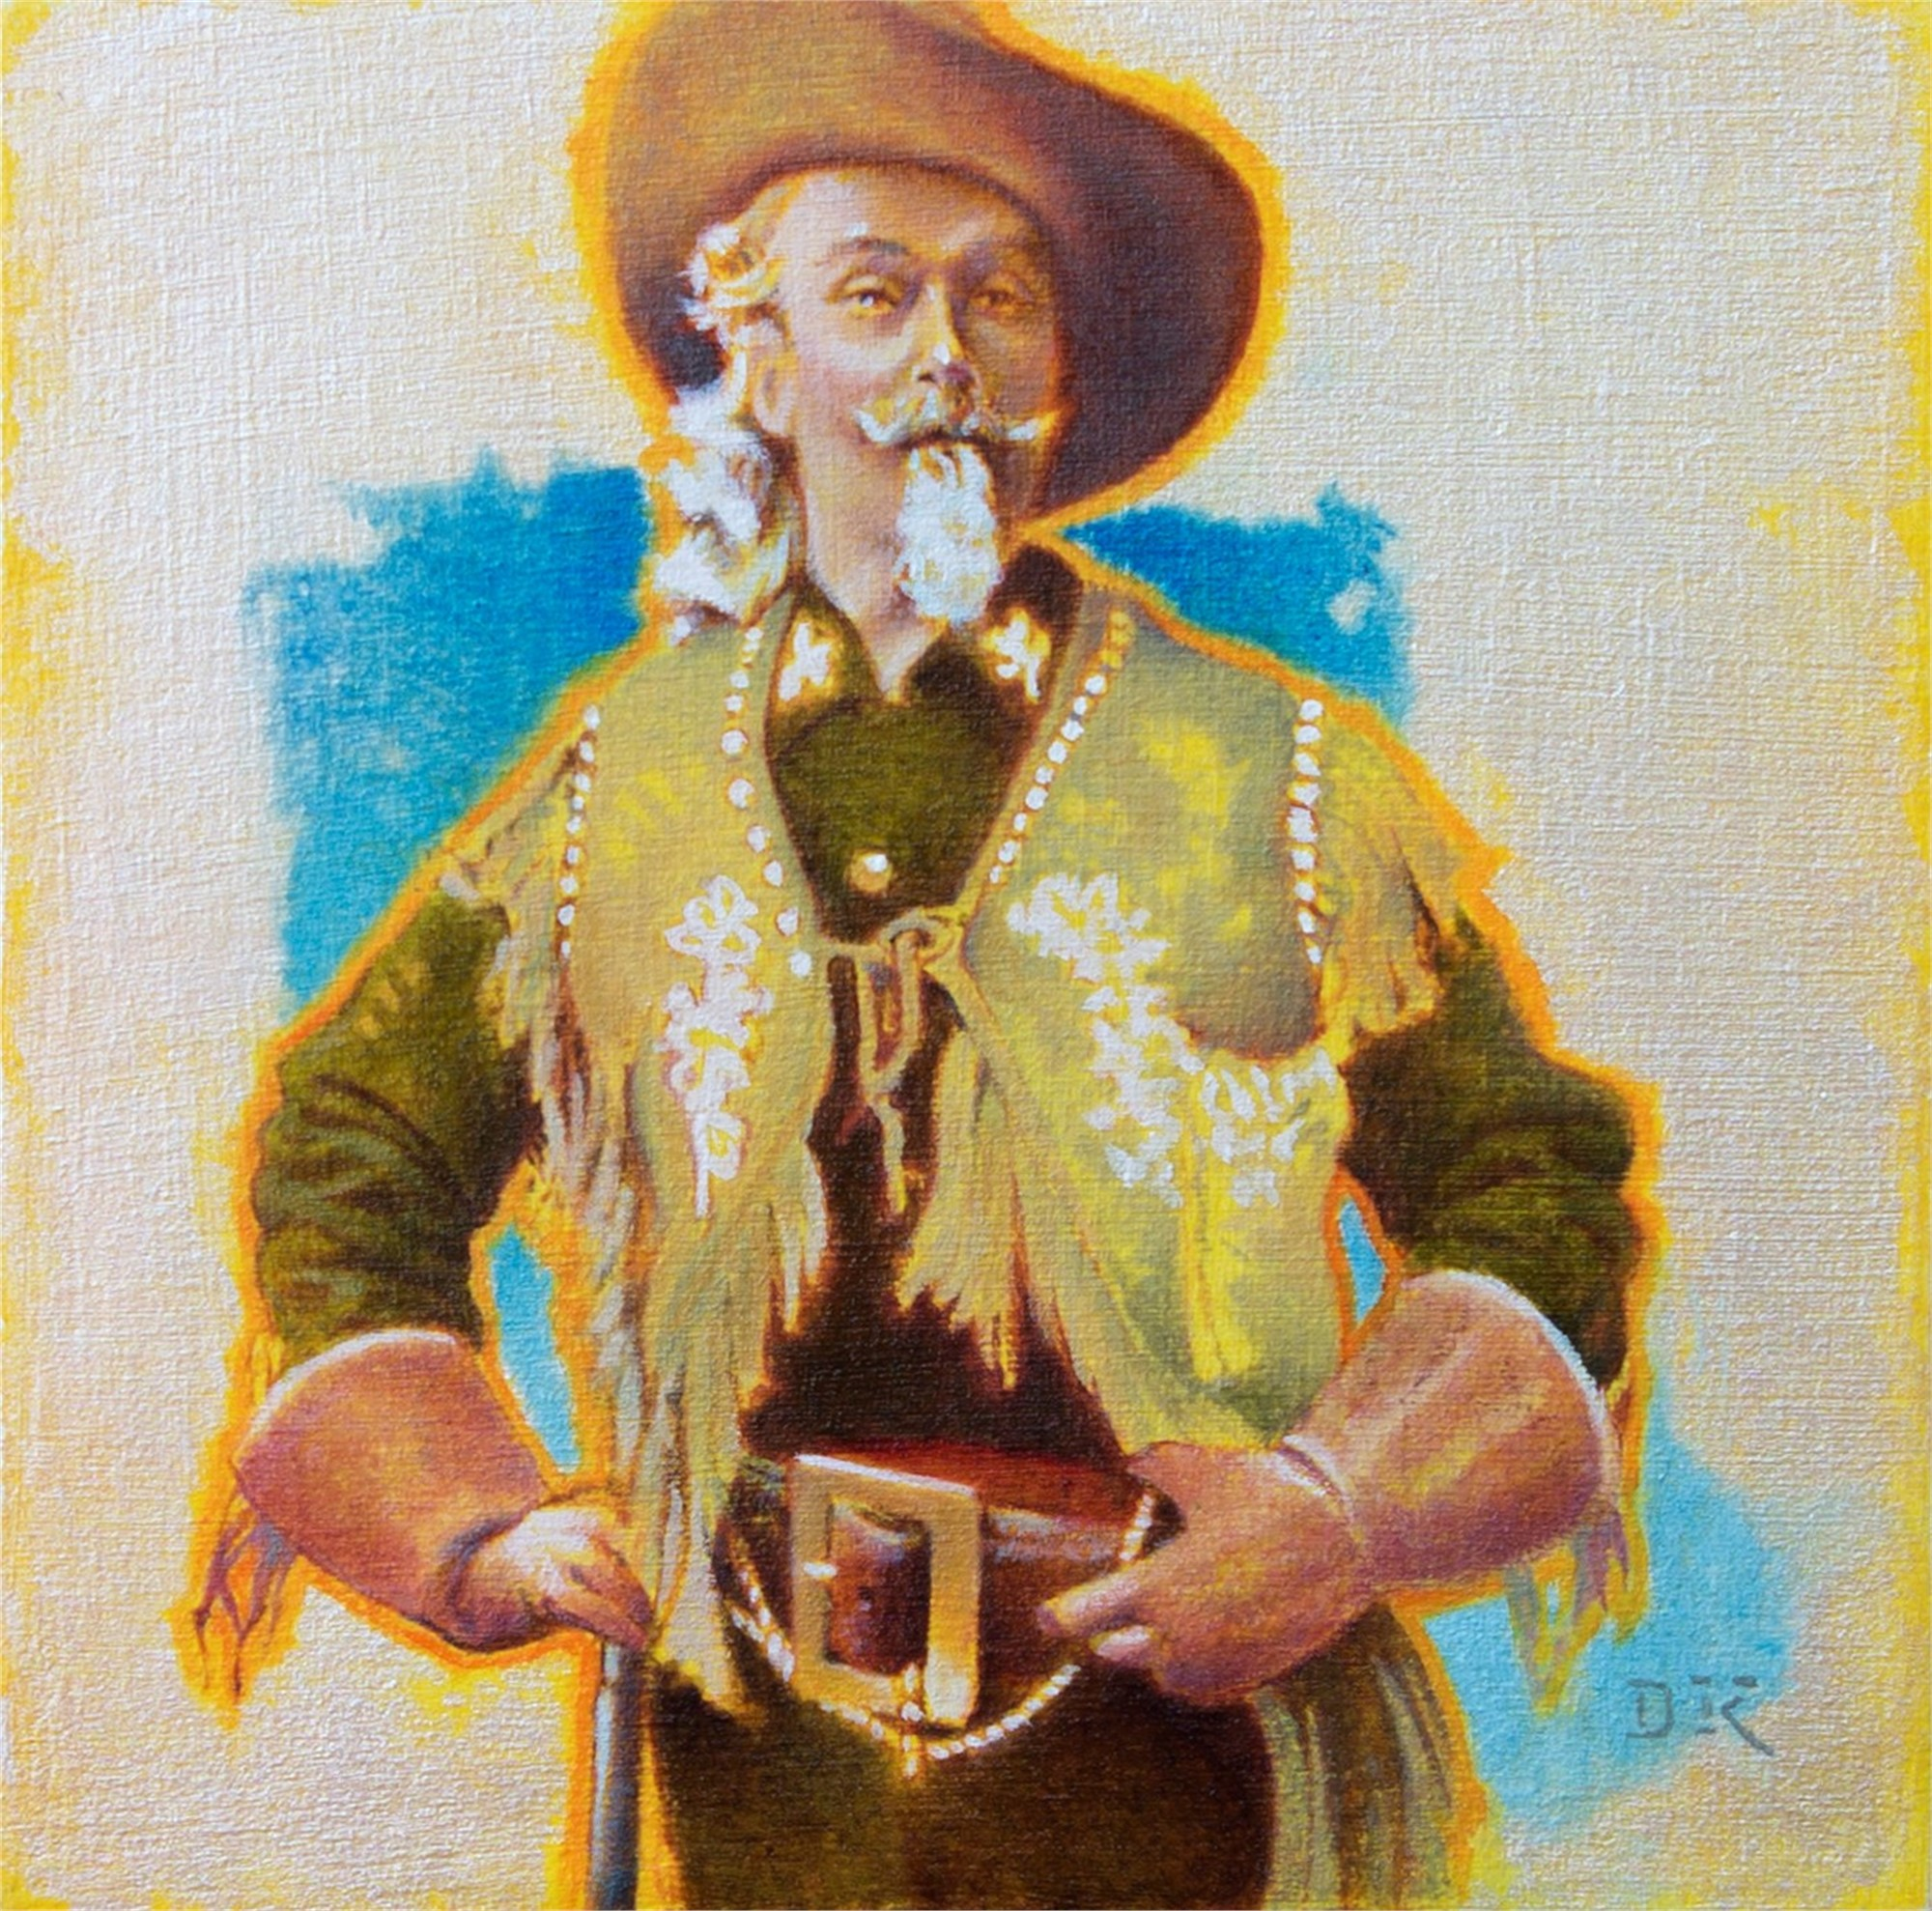 My Restless Spirit II (portrait of Buffalo Bill) by David Kammerzell